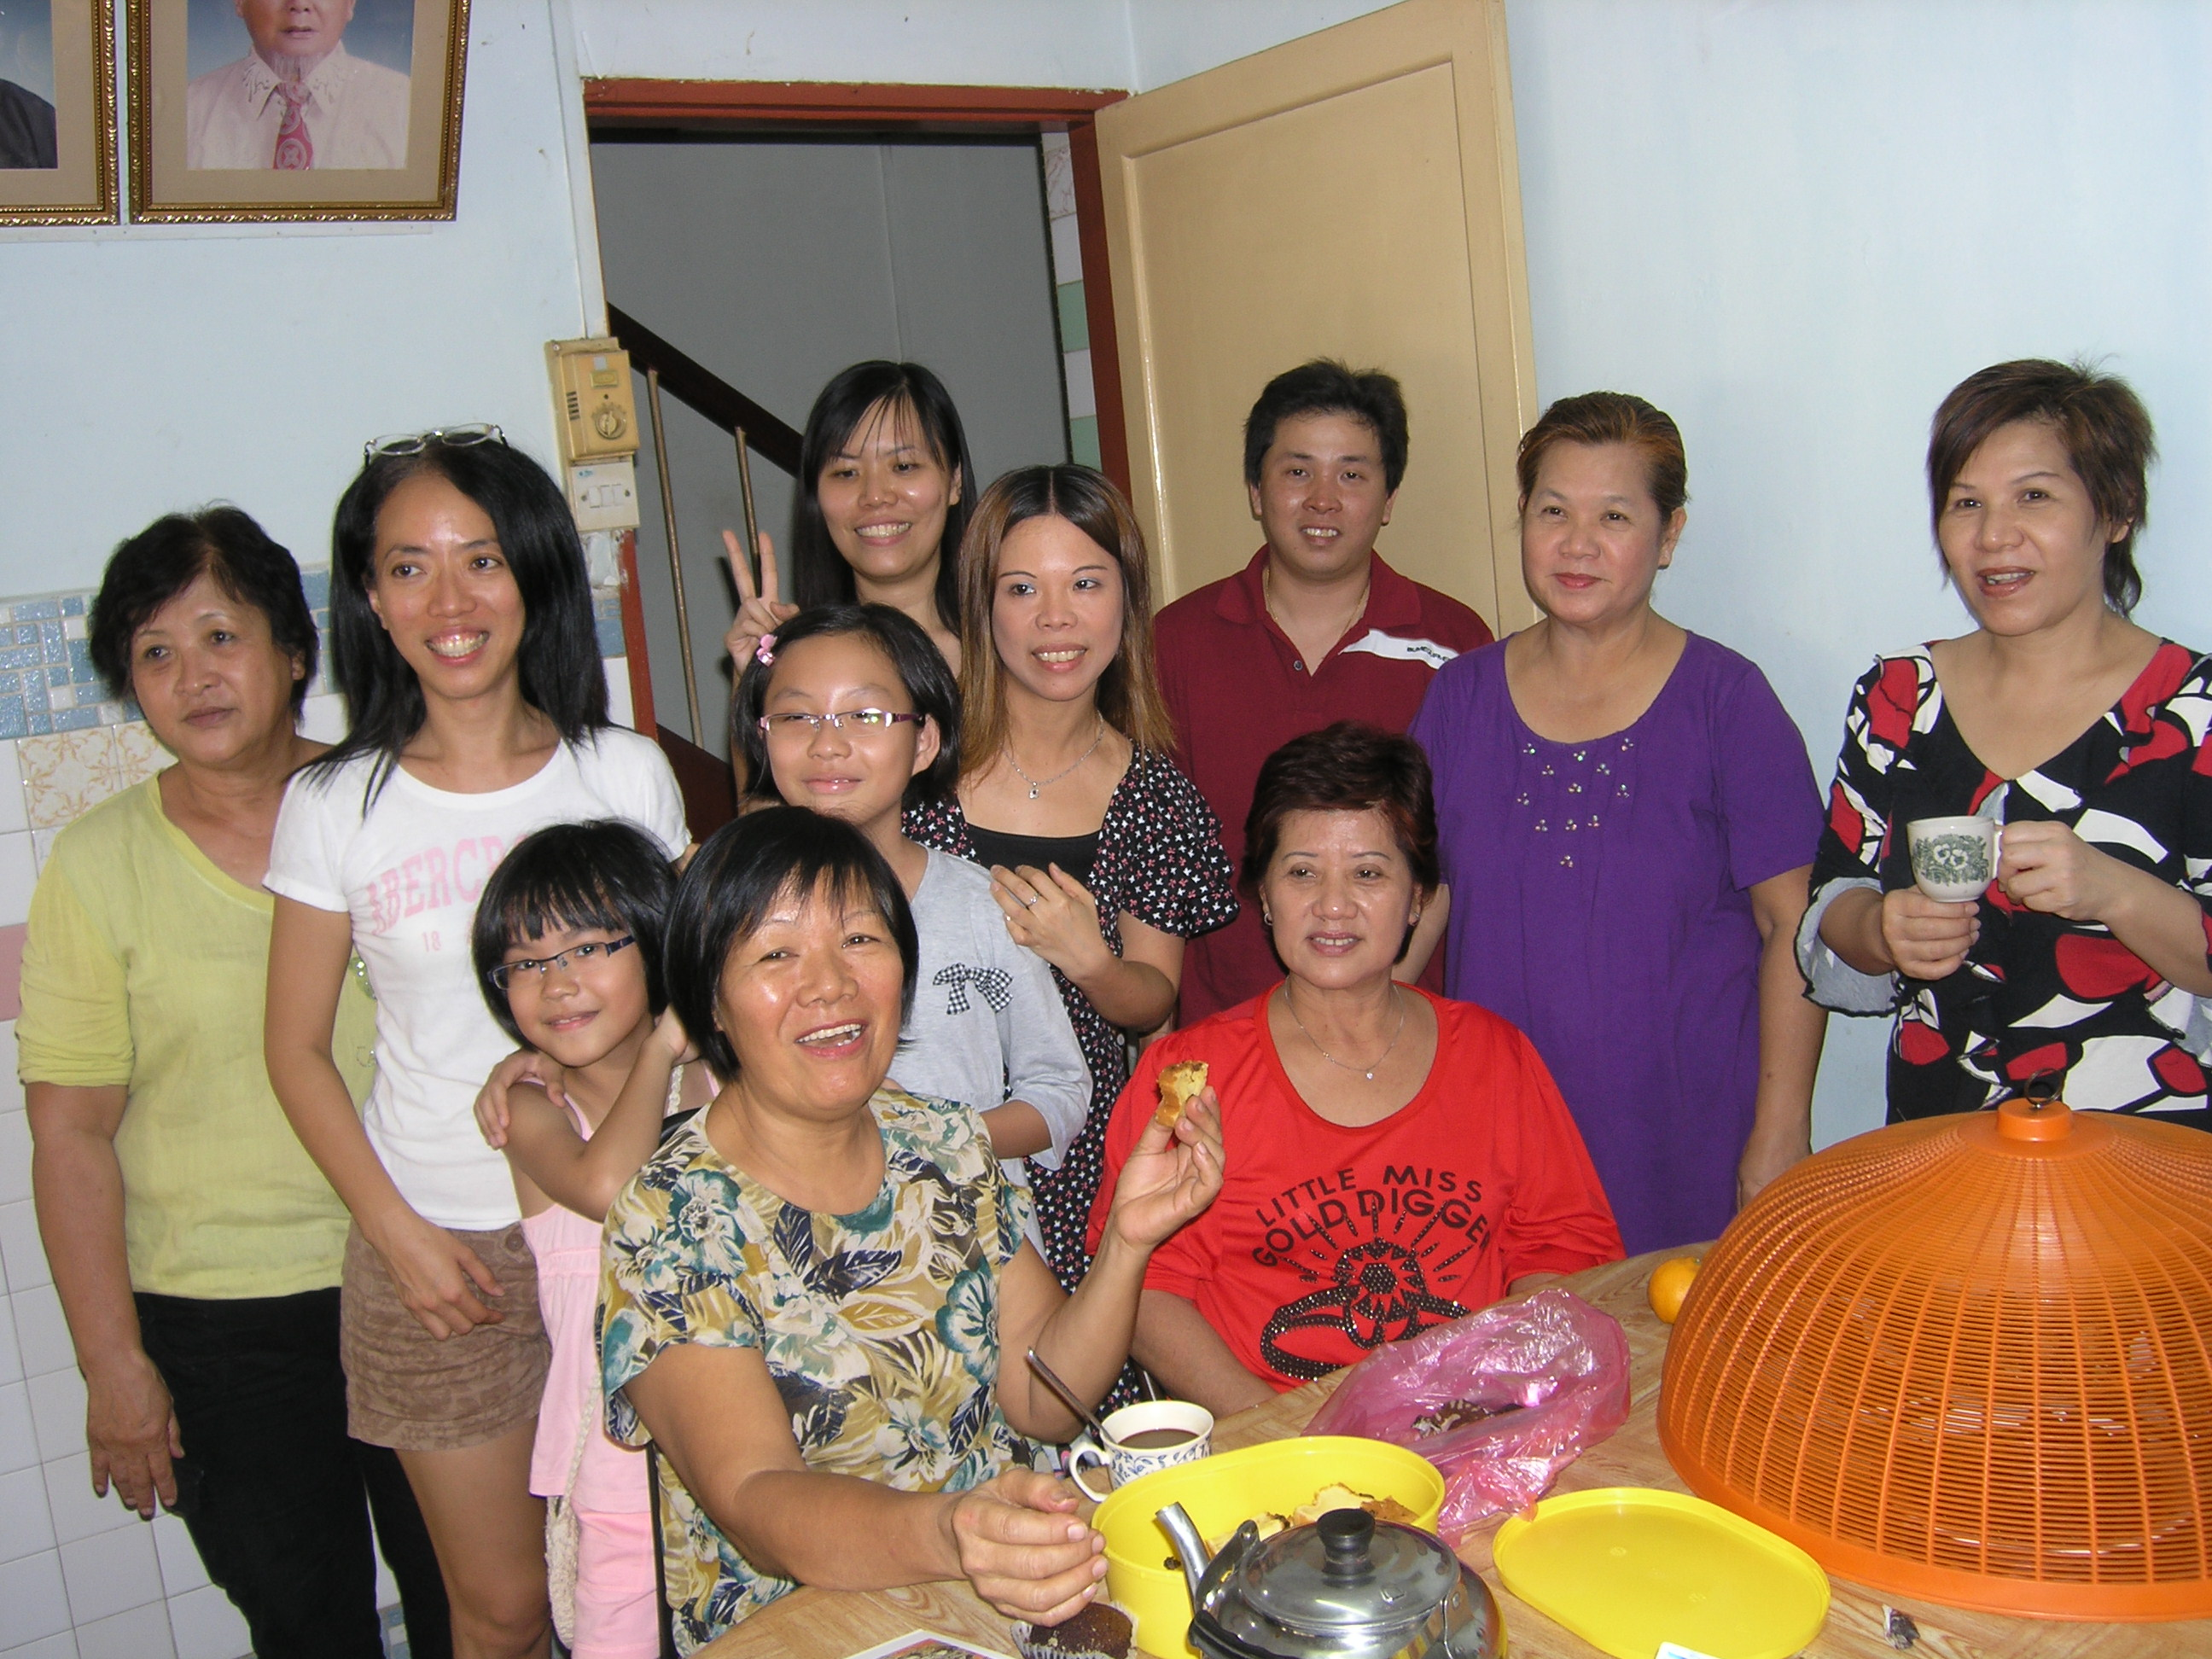 Giap Family Chinese New Year Gathering 2008. Image 4. Image size:2592x1944px